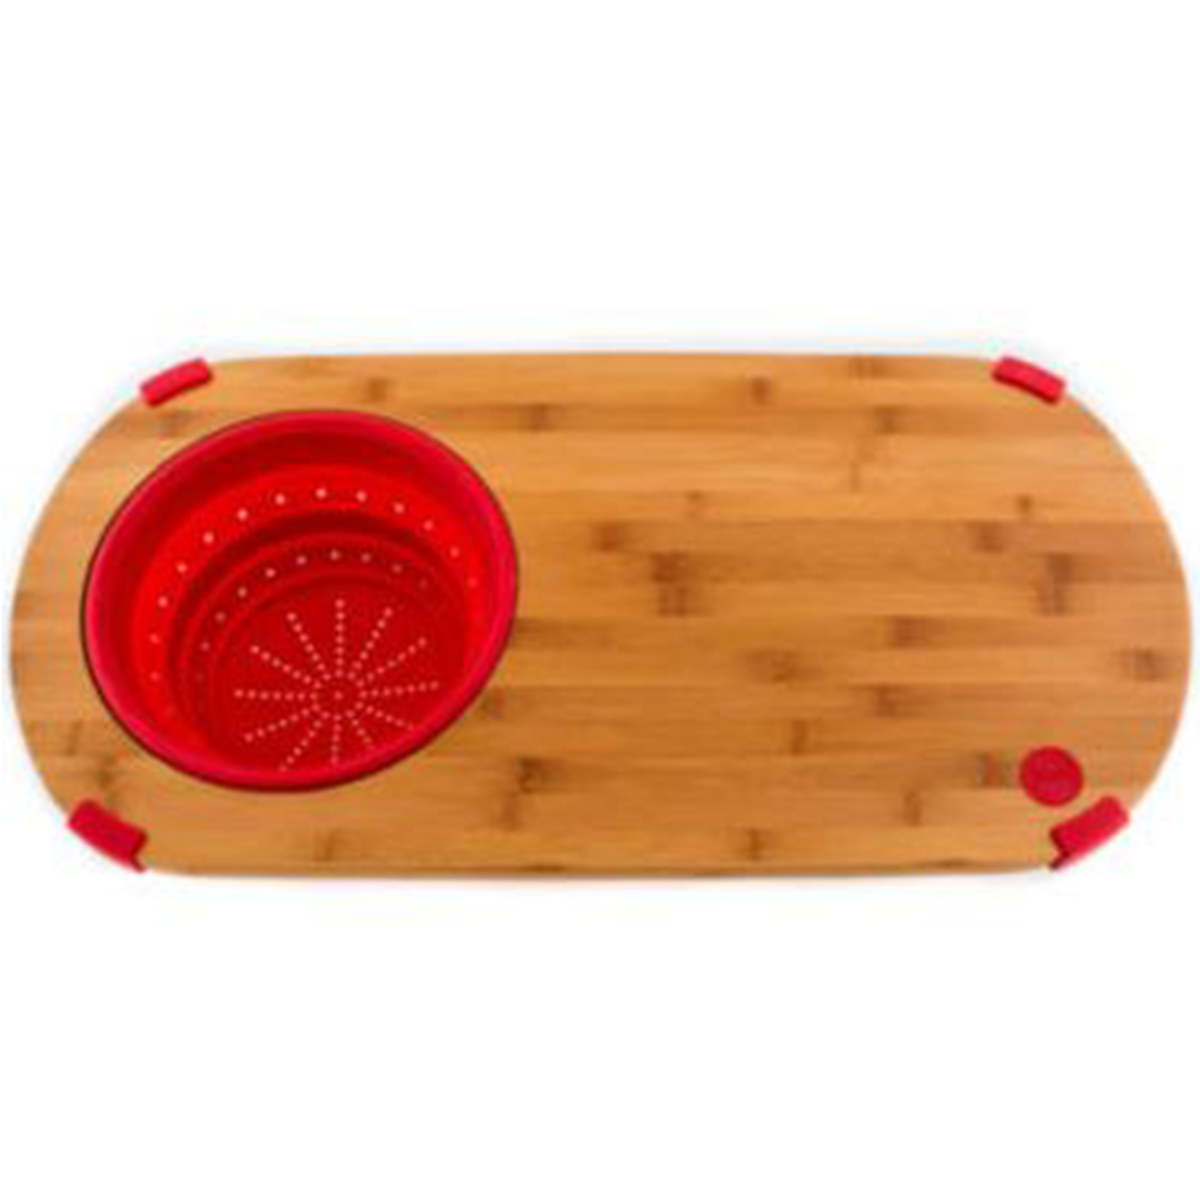 Cutting board designed with a built in strainer photo